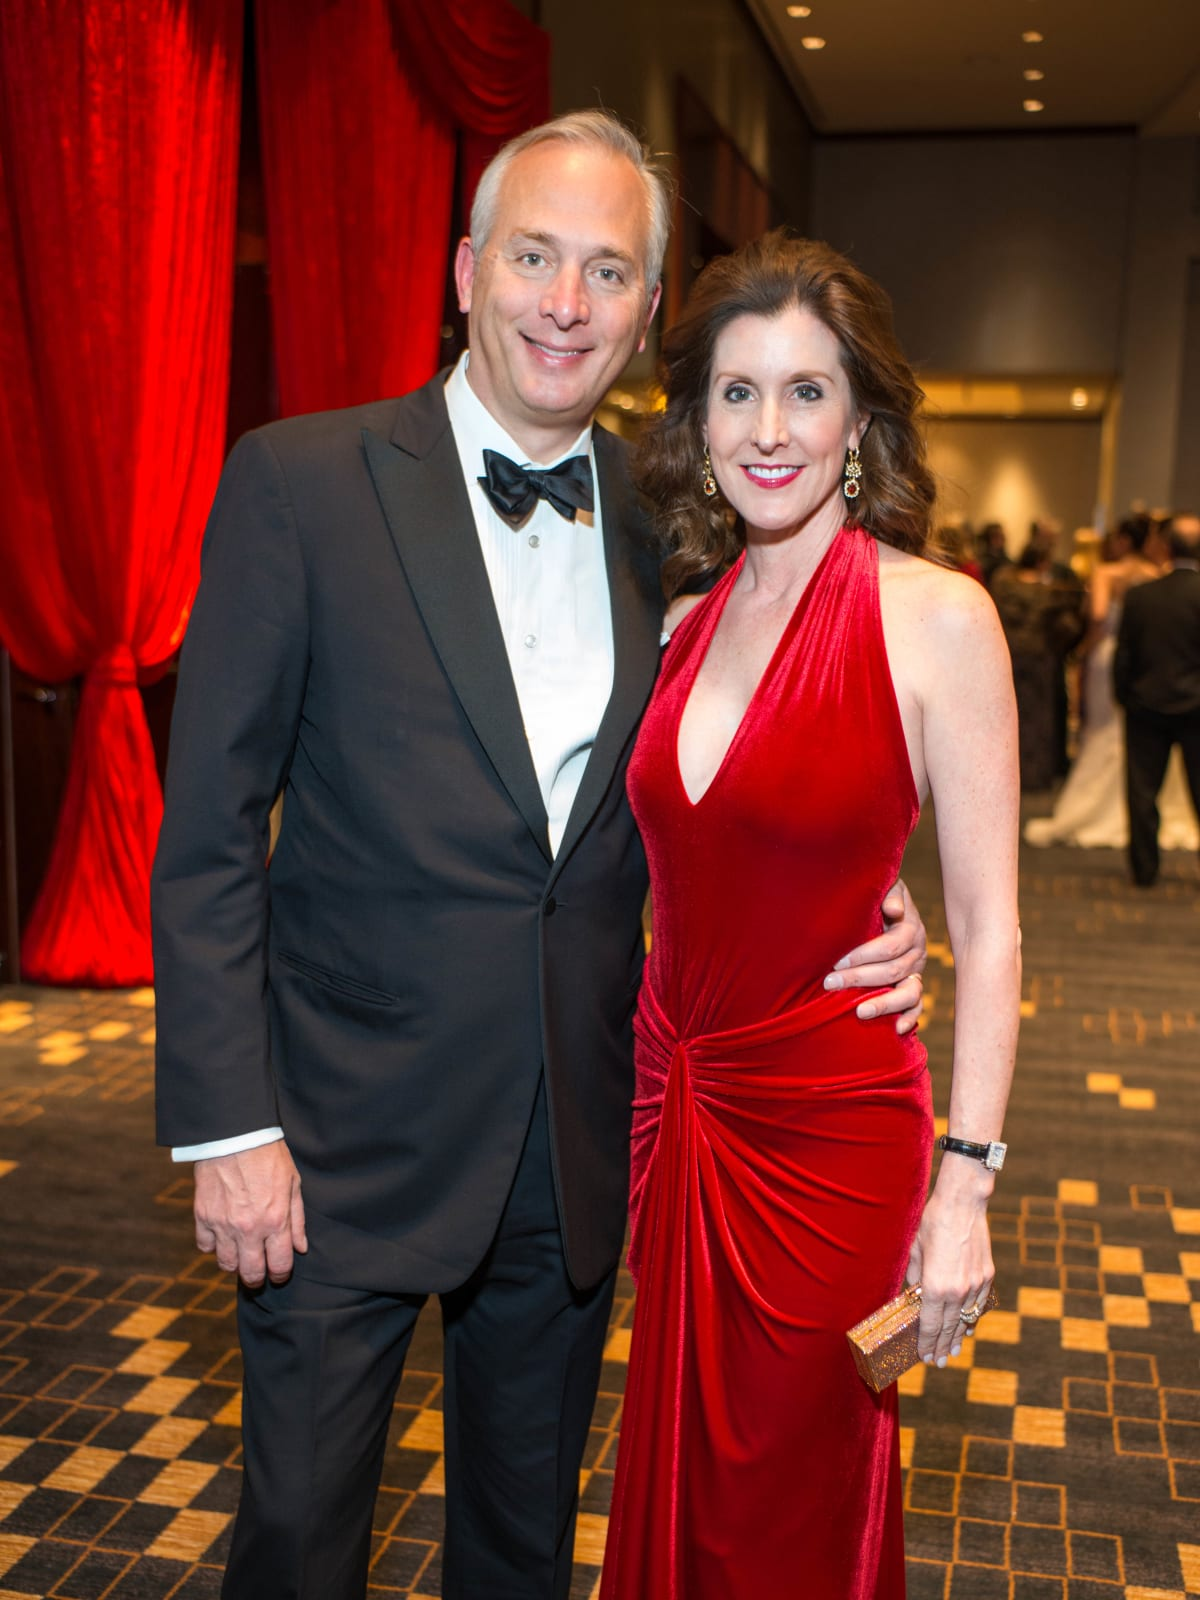 Red Cross Ball, Feb. 2016, Bobby Tudor, Phoebe Tudor